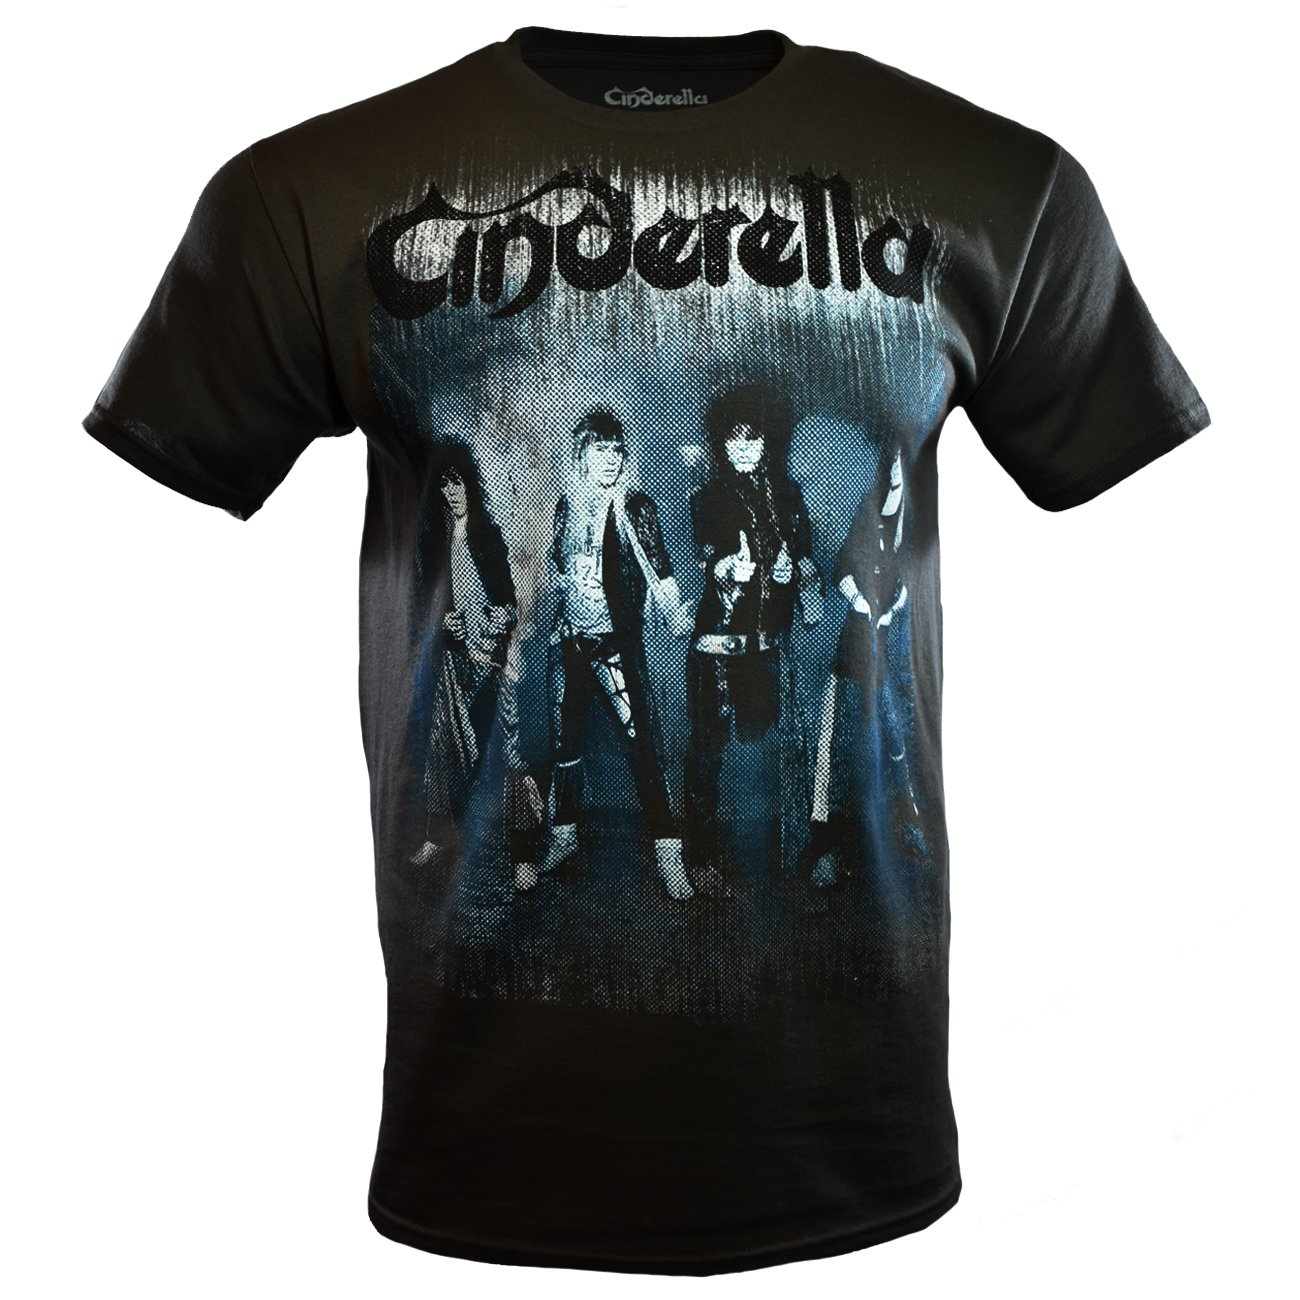 702bffca Amazon.com: Cinderella Men's Graphic Rock & Roll Band T-Shirt, Black:  Clothing